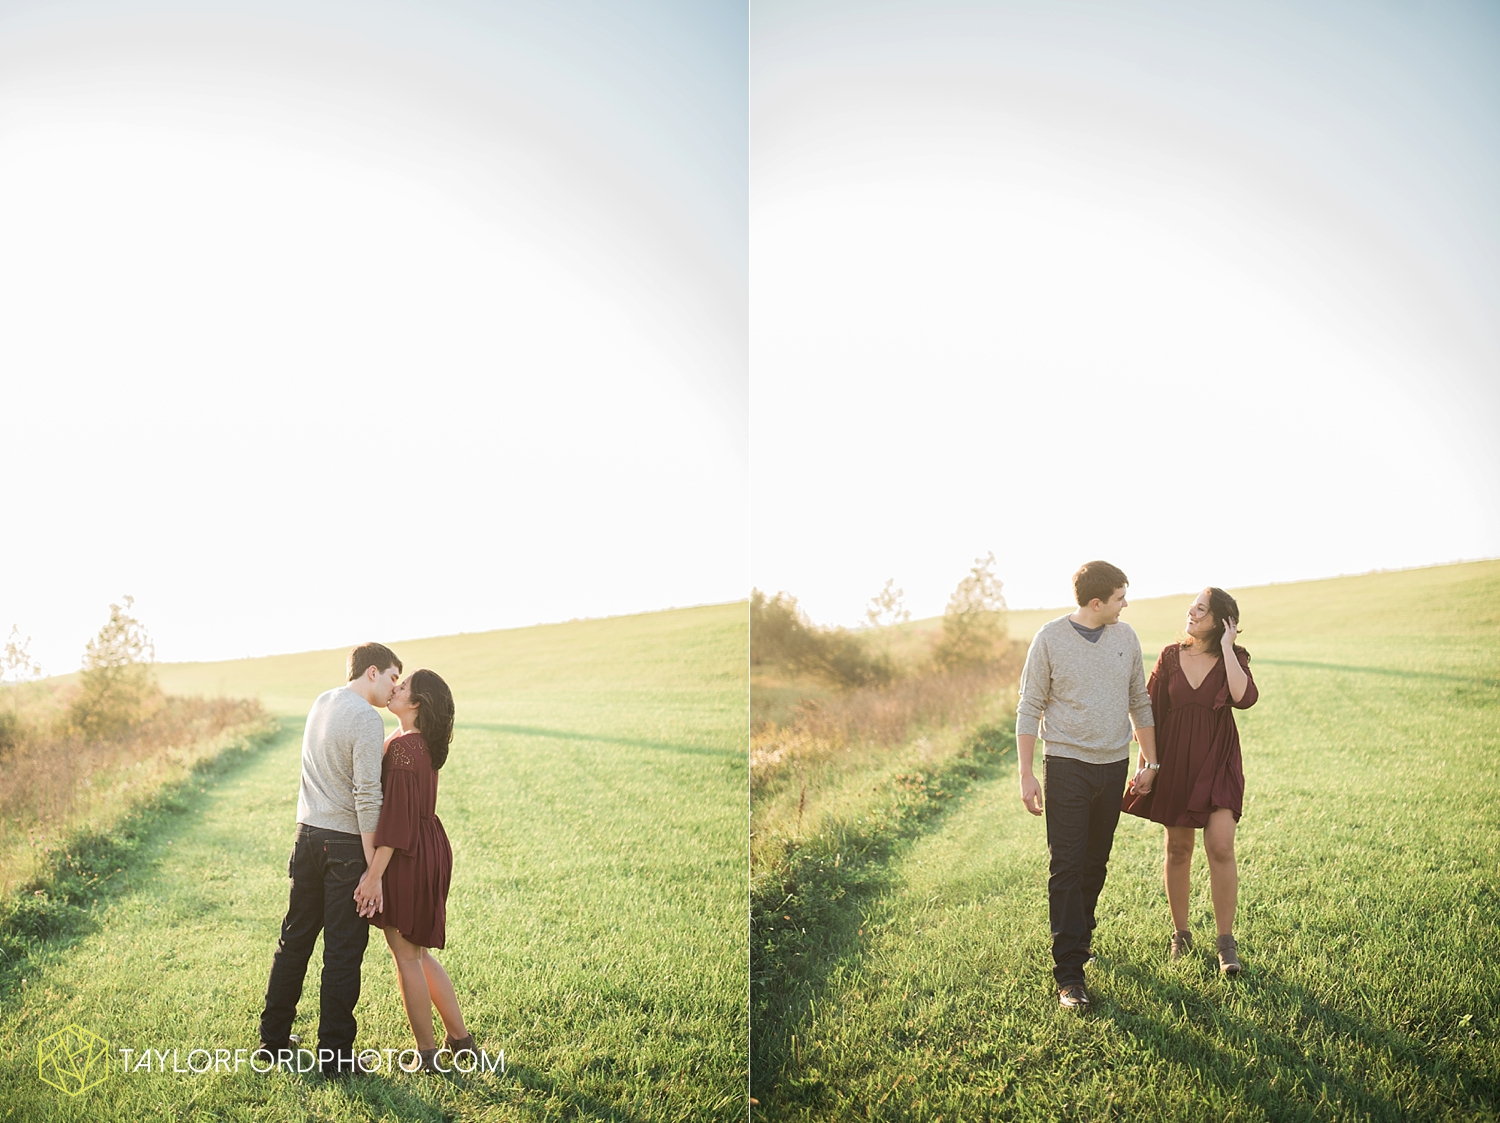 van_wert_ohio_wedding_photographer_taylor_ford_cincinatti_engagement_2974.jpg